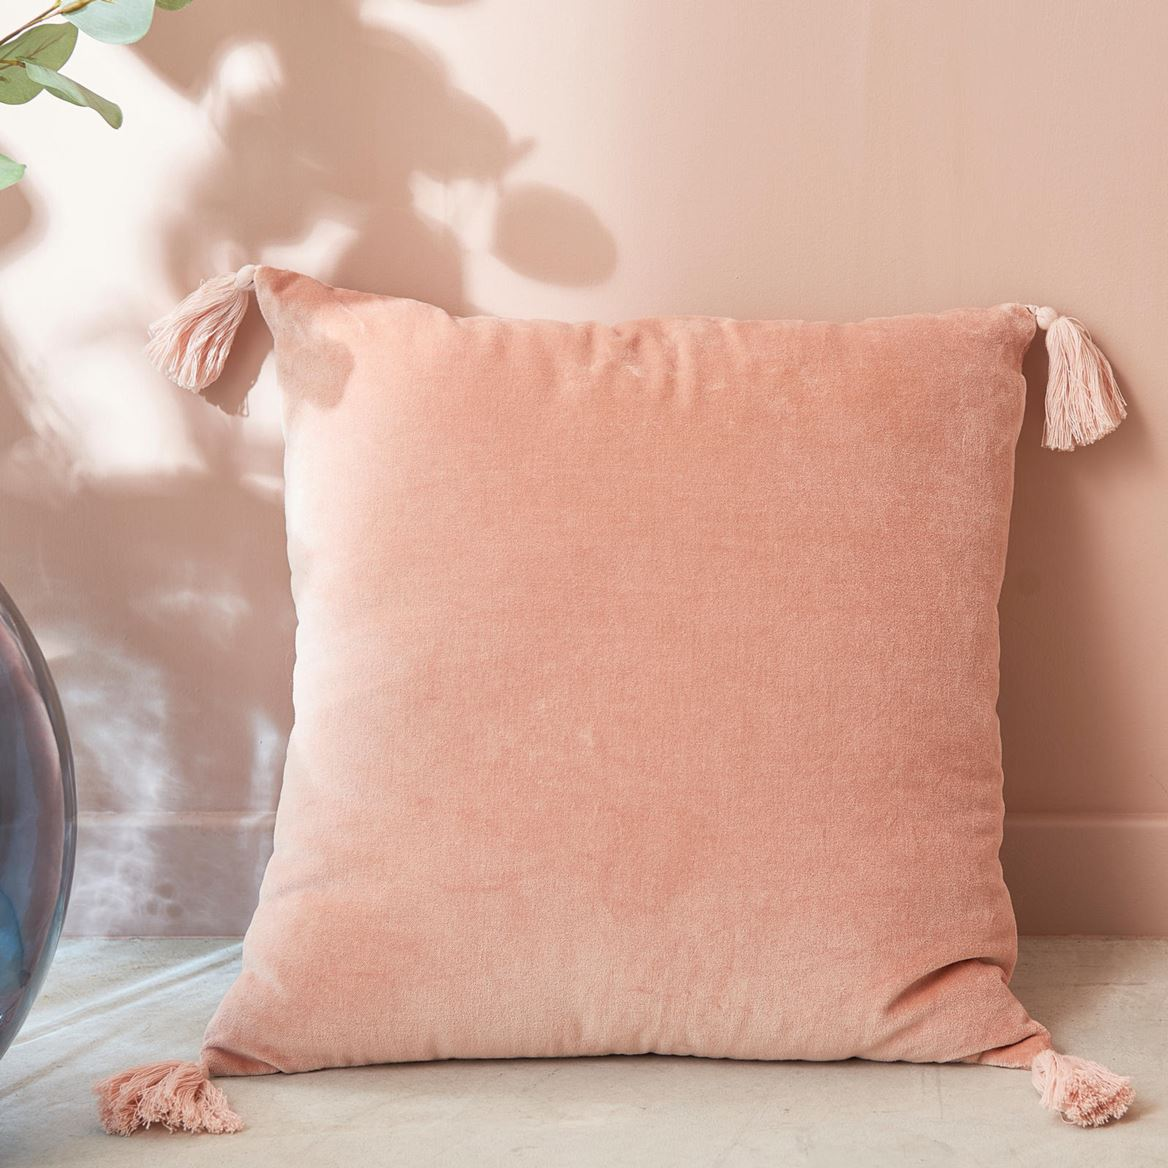 INA Coussin rose Larg. 45 x Long. 45 cm_ina-coussin-rose-larg--45-x-long--45-cm